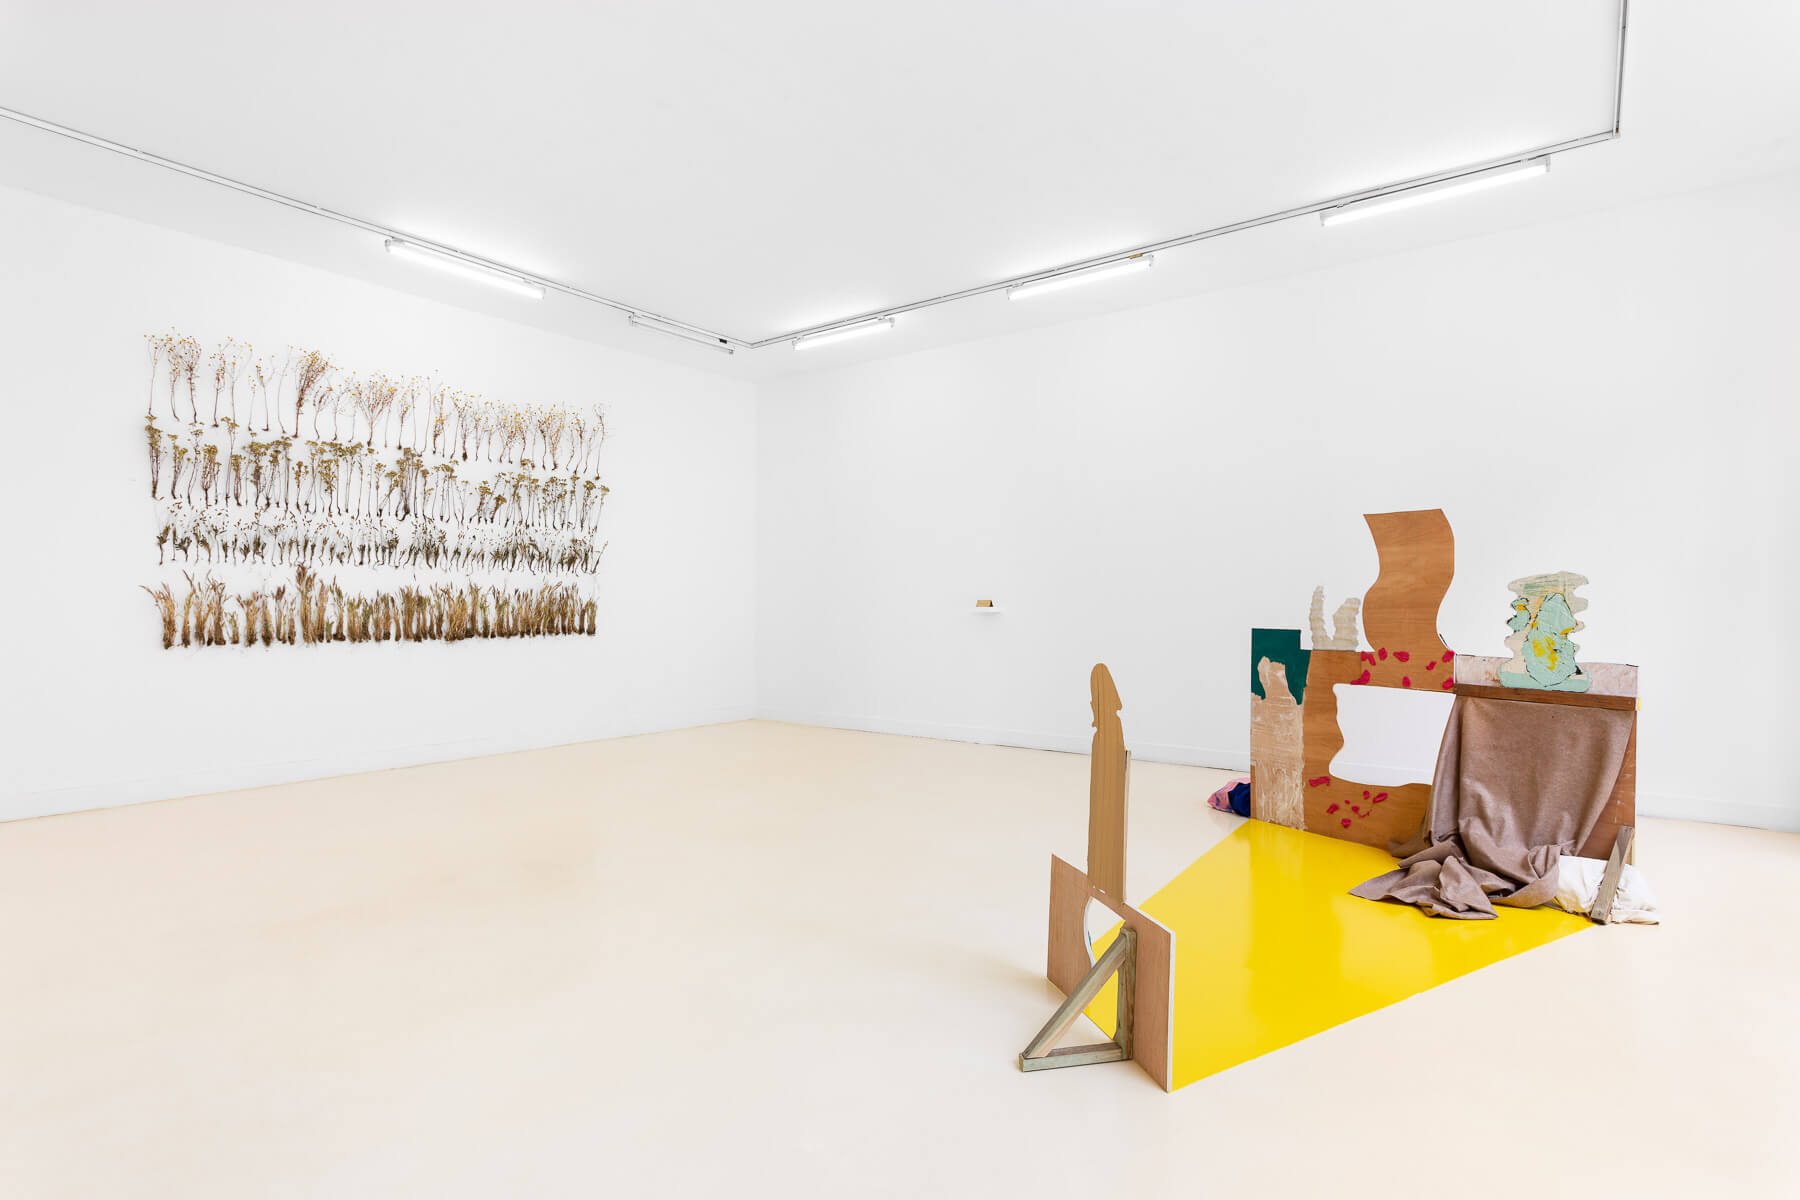 Installation view, On the edge of the landscape comes the world, Pavilhão Branco, 2021, curated by Carolina Valente